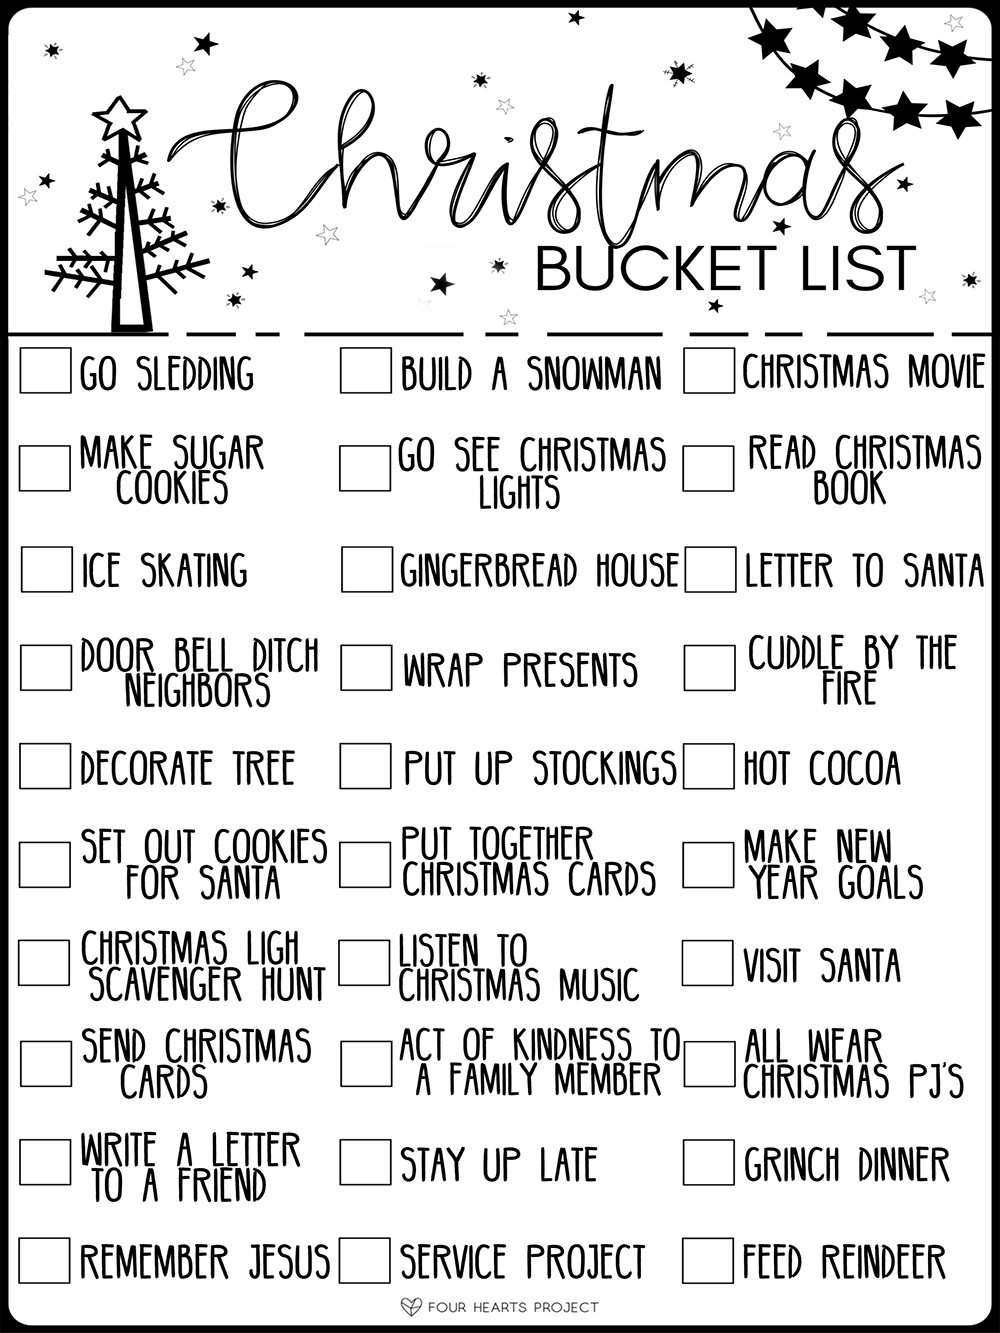 kailee wright free printable holiday bucket list